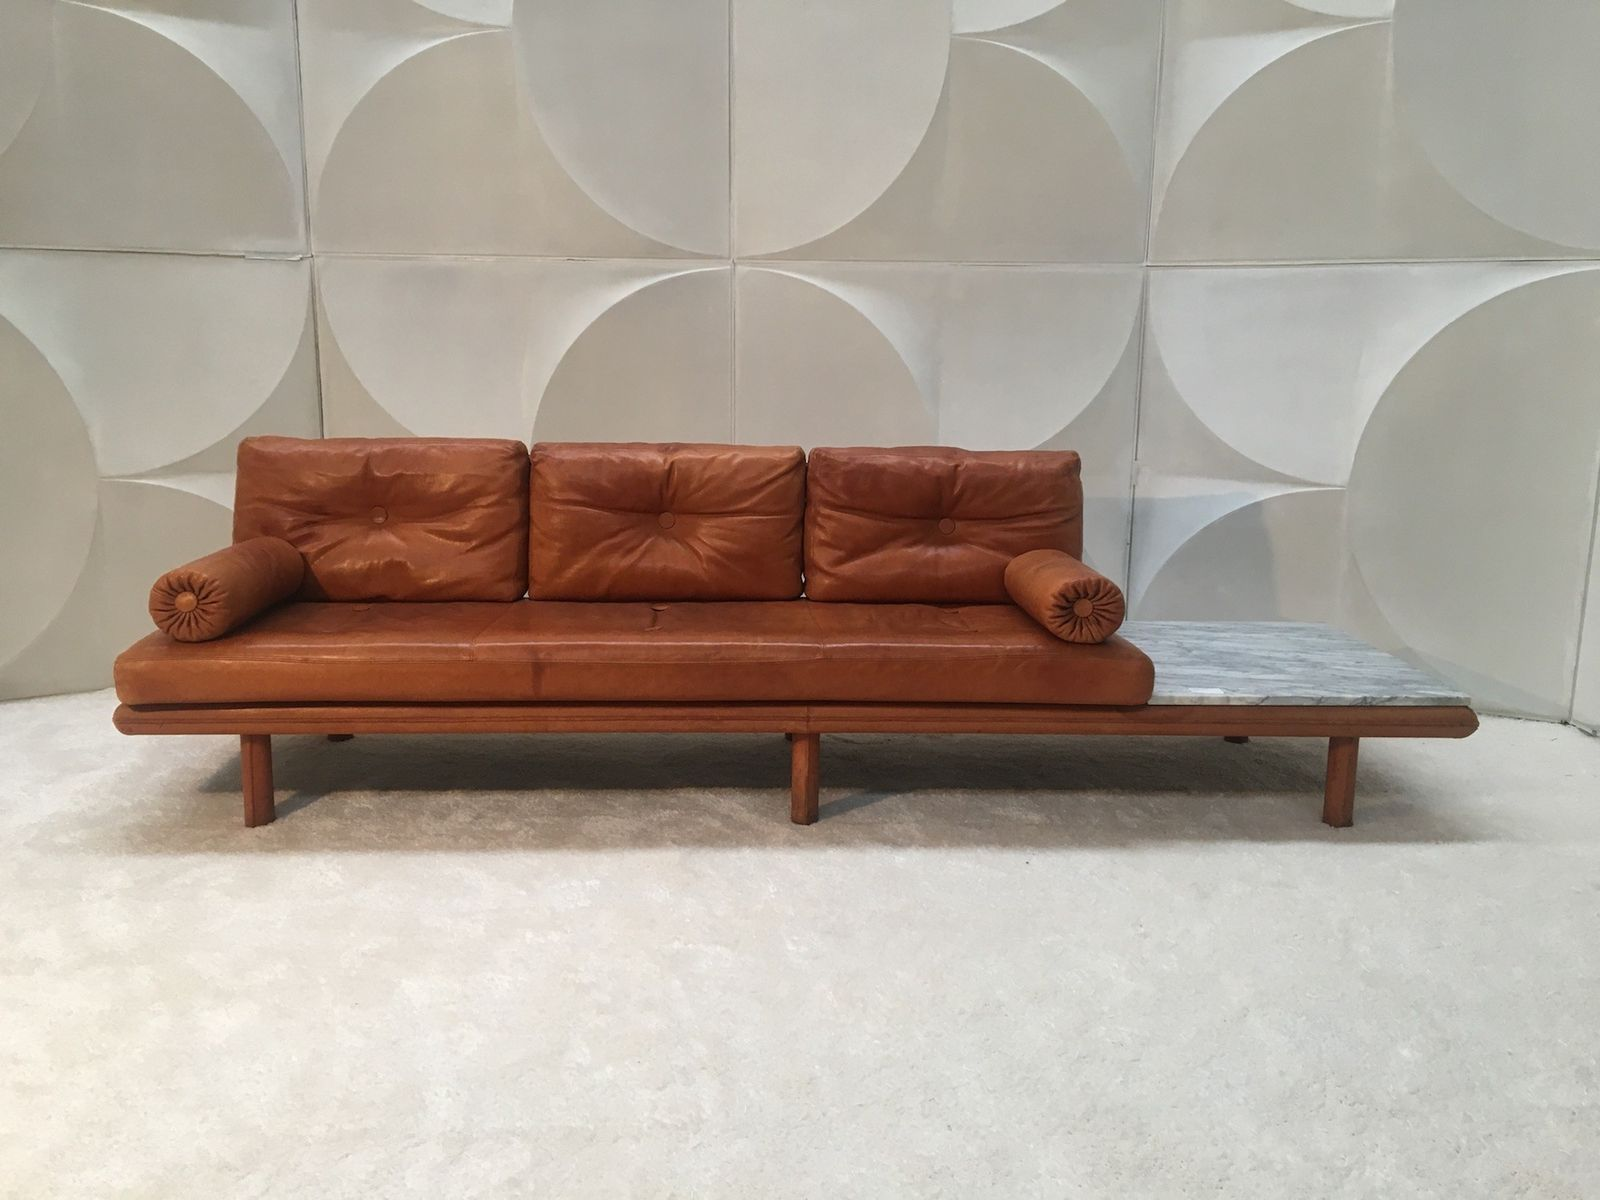 Leather Sofa By Franz K Ttgen Sofa For Kill International,